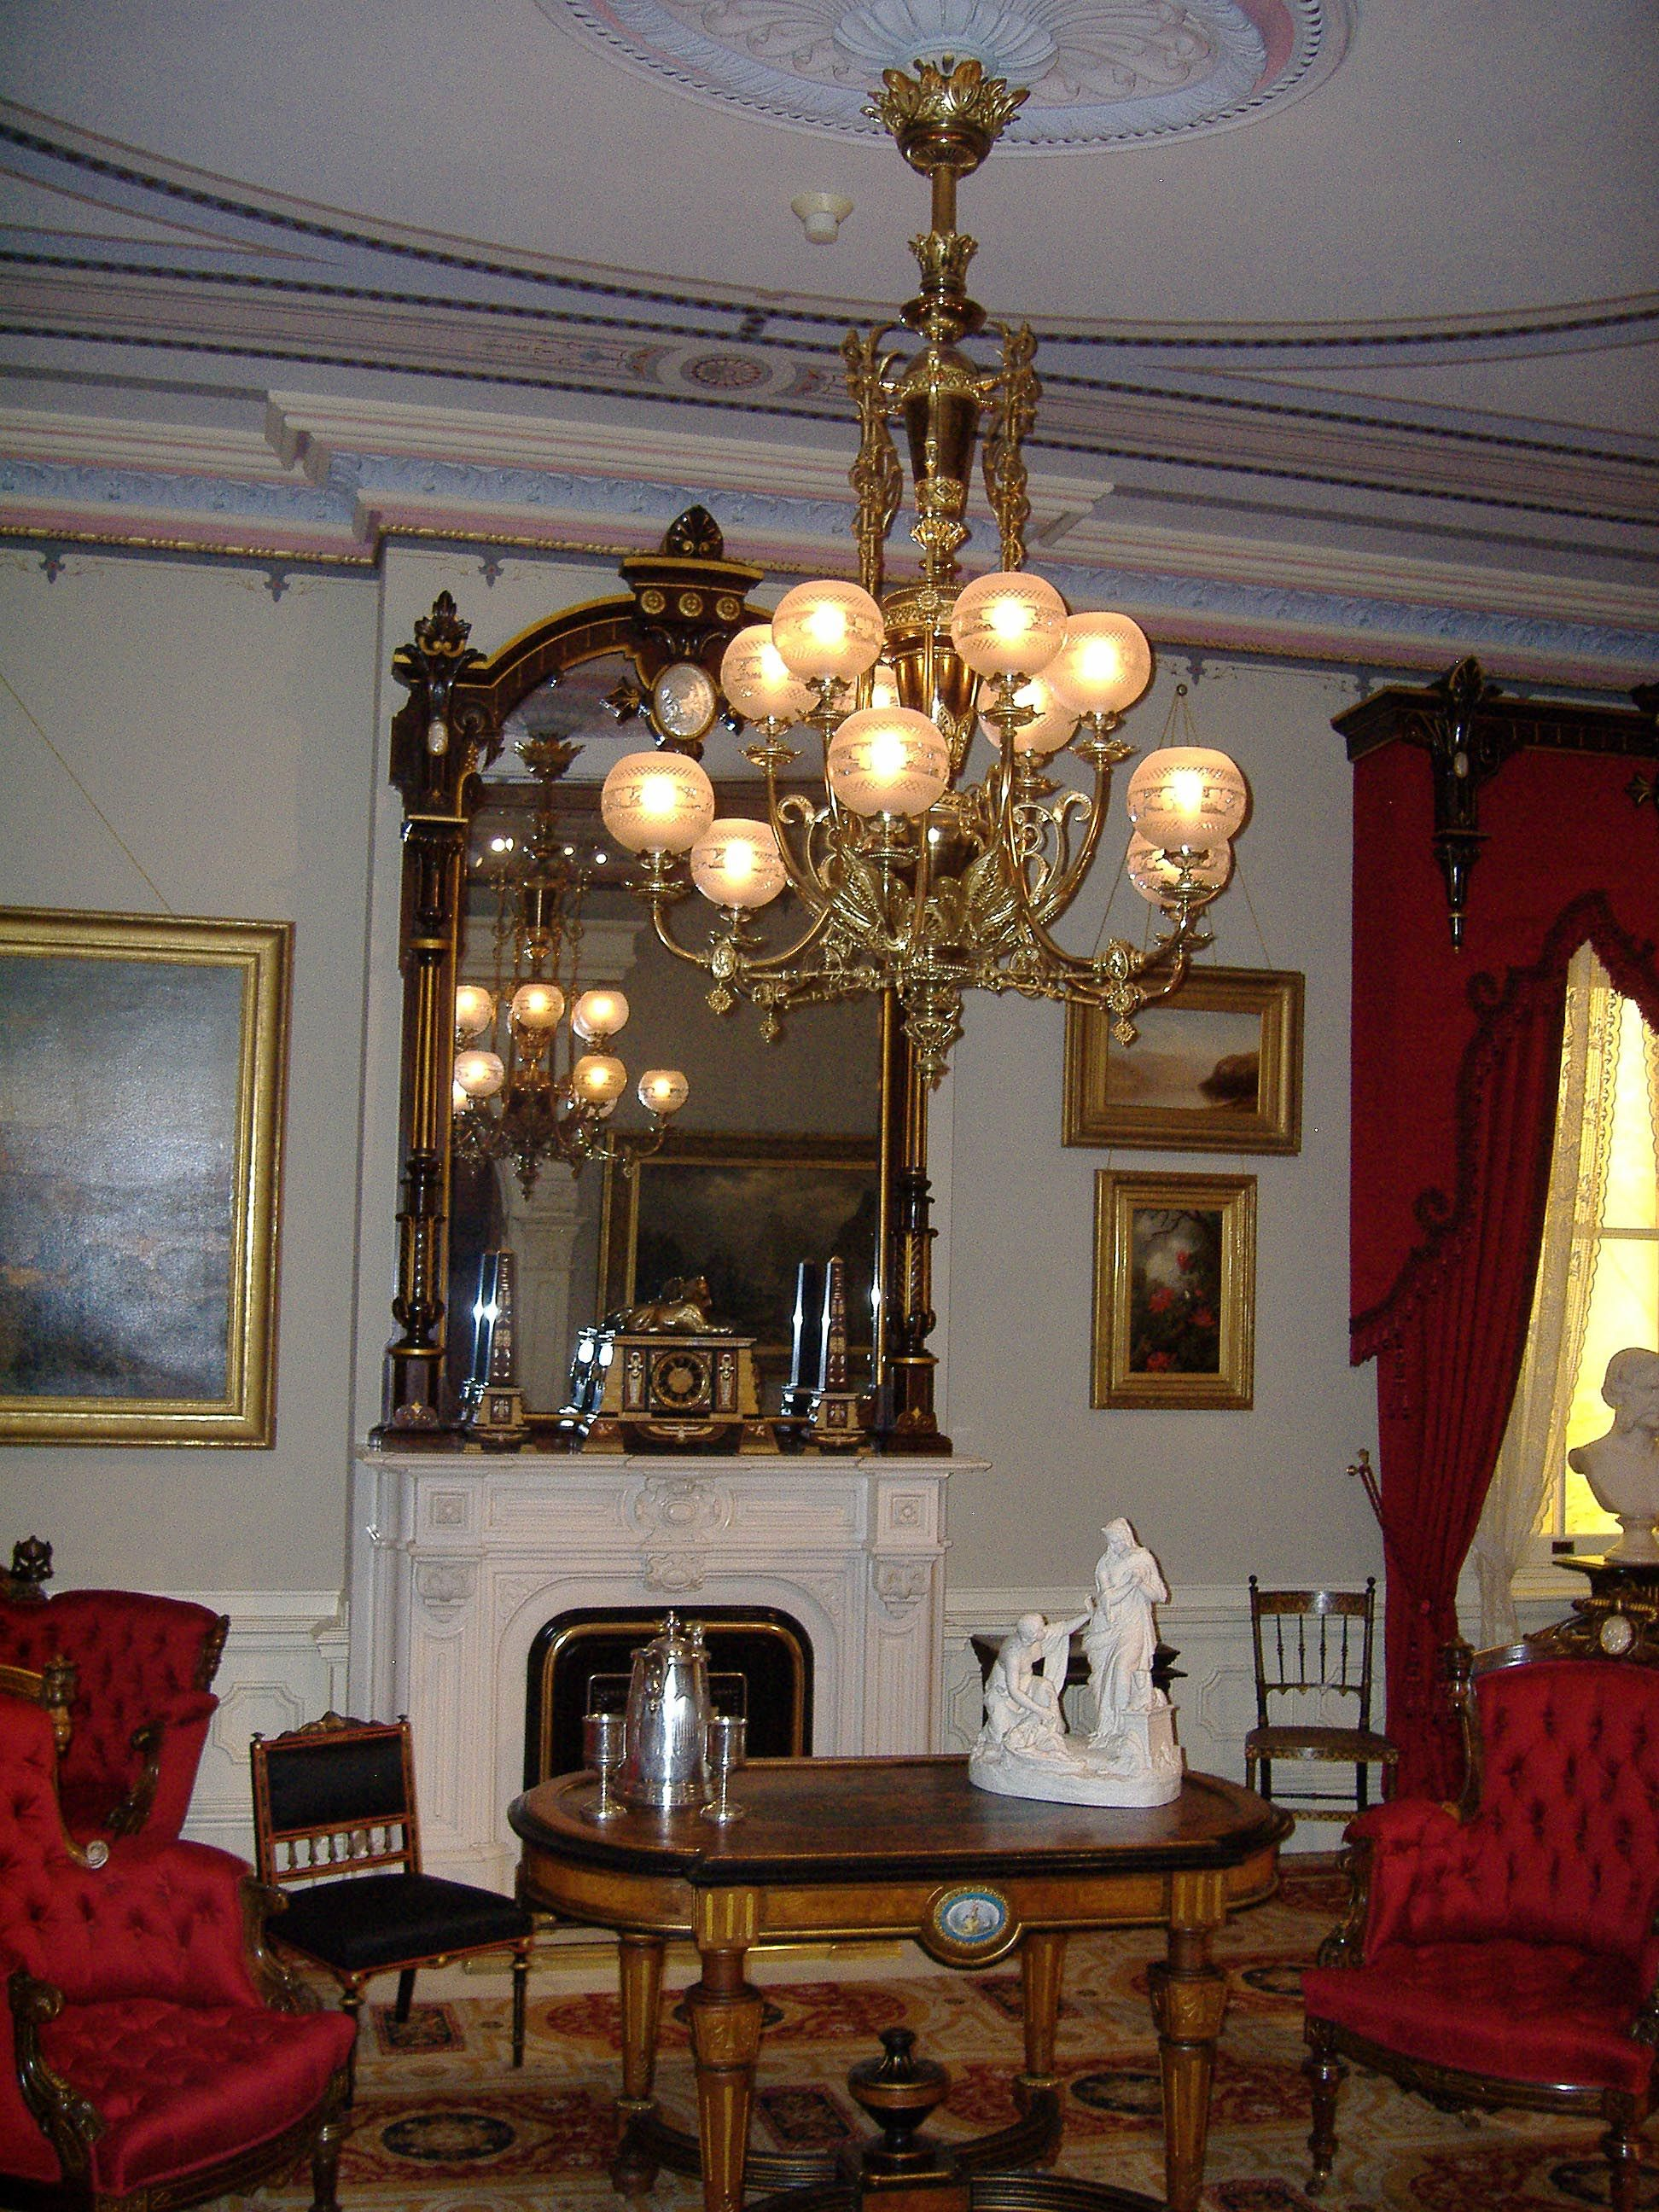 American 1860s parlor mantle and chandelier